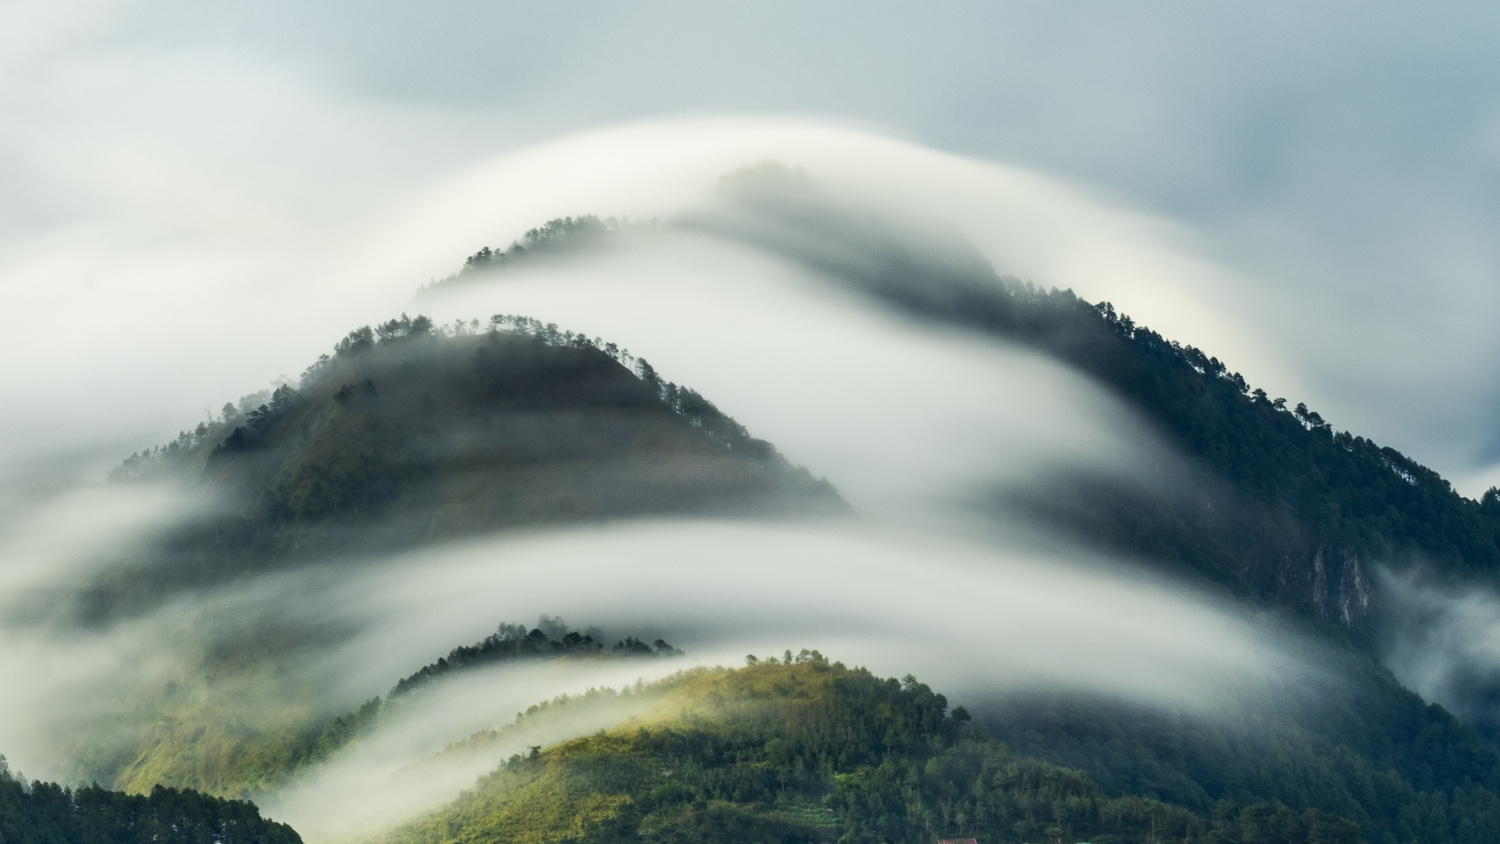 Mystic Mountain by Jay-Rness Ceria